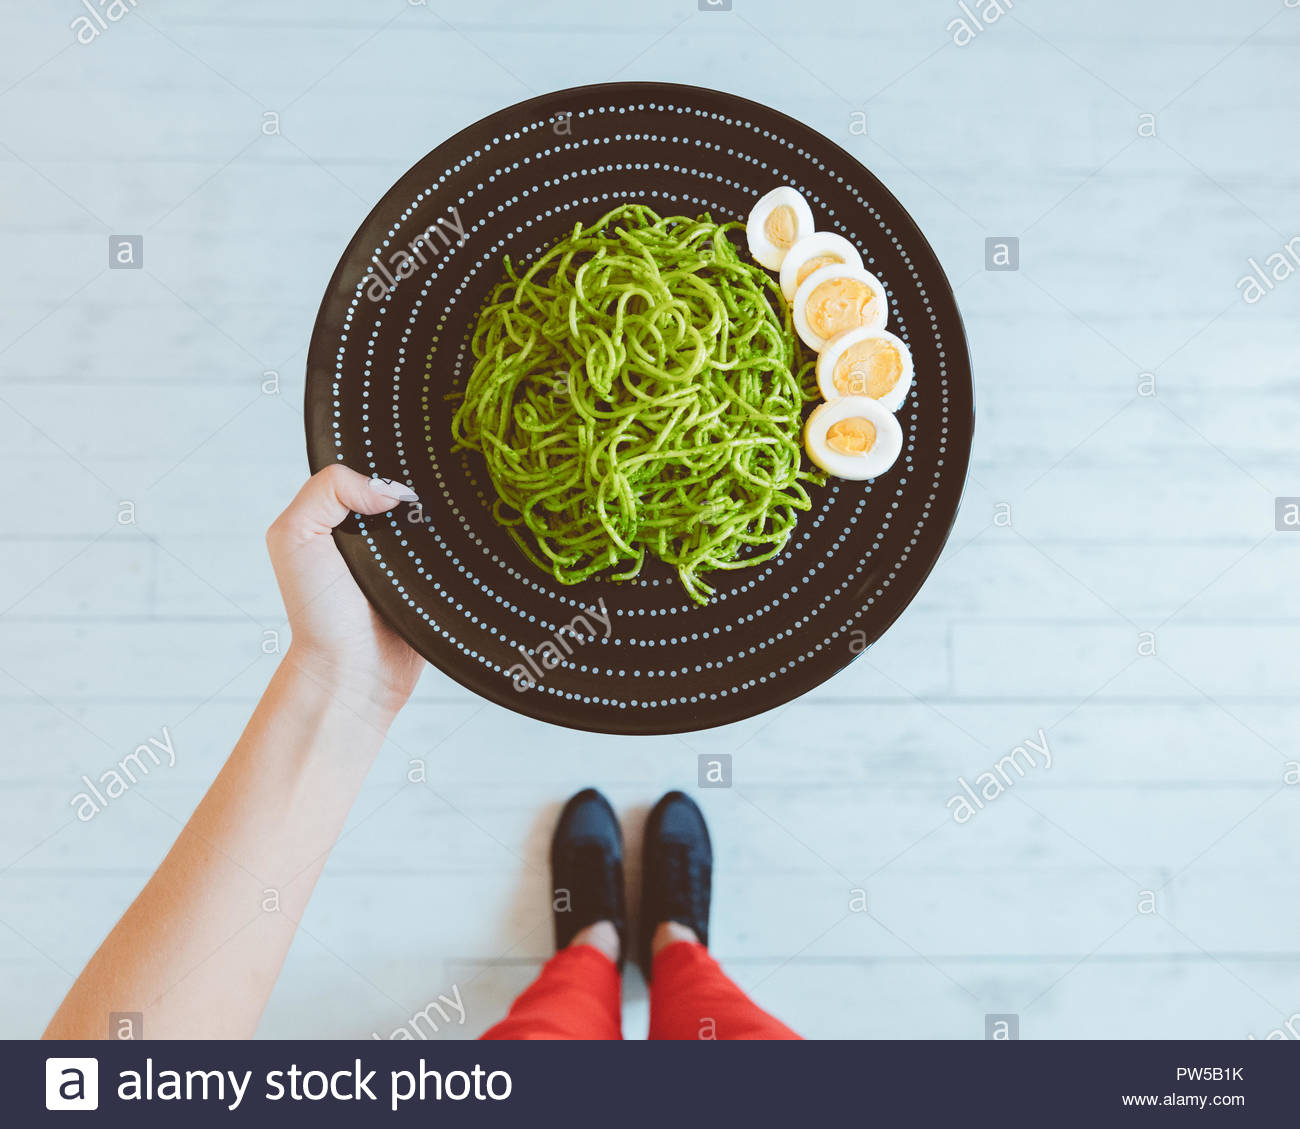 Top view of woman photographing healthy lunch plate aganist floor. Unrecognizable person, close up of meal. - Stock Image